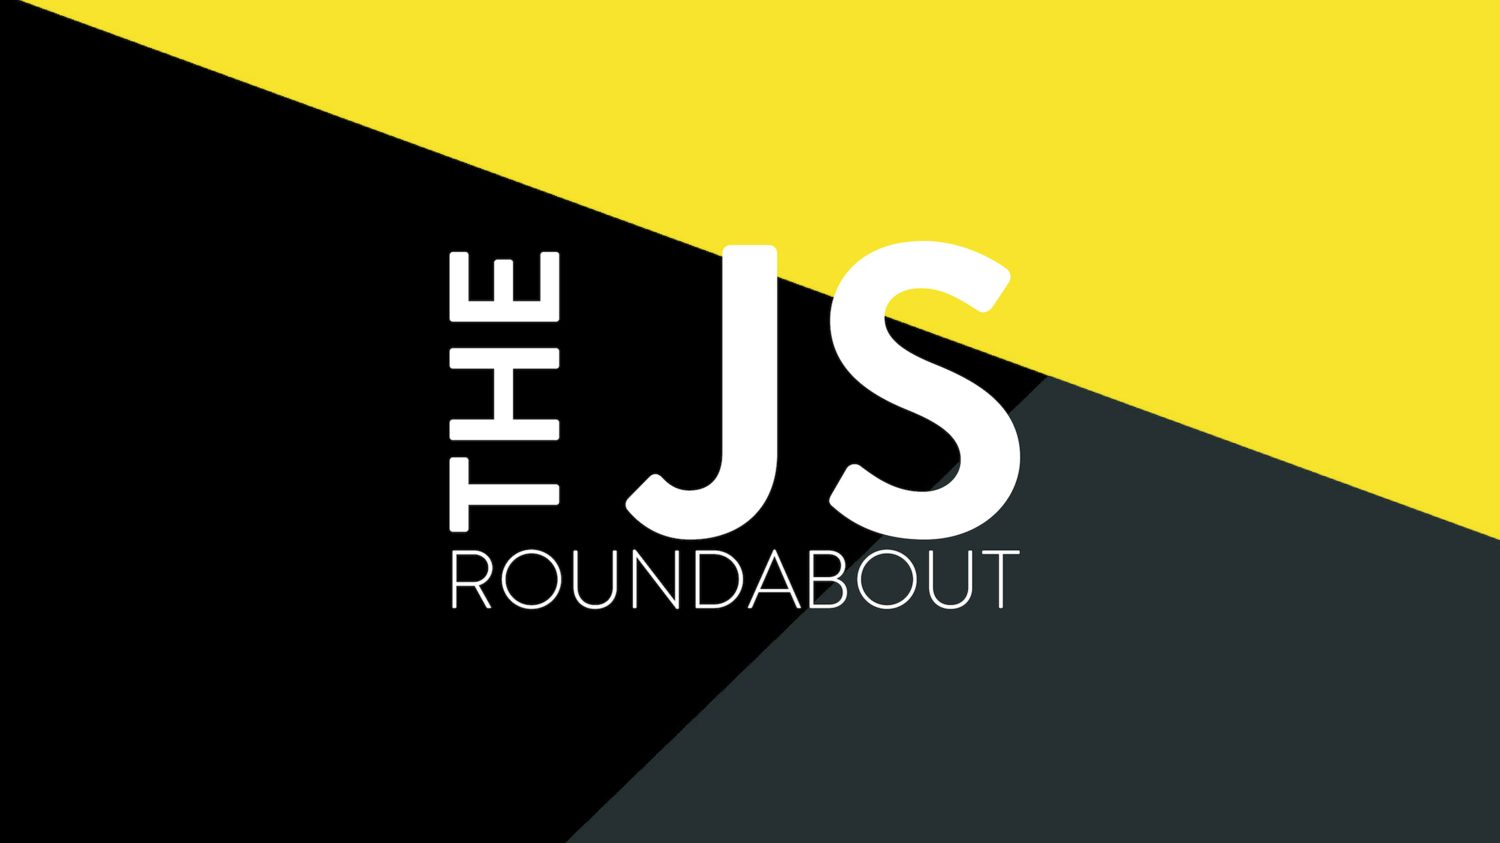 Performance - The JS Roundabout   Events   Explore Group USA